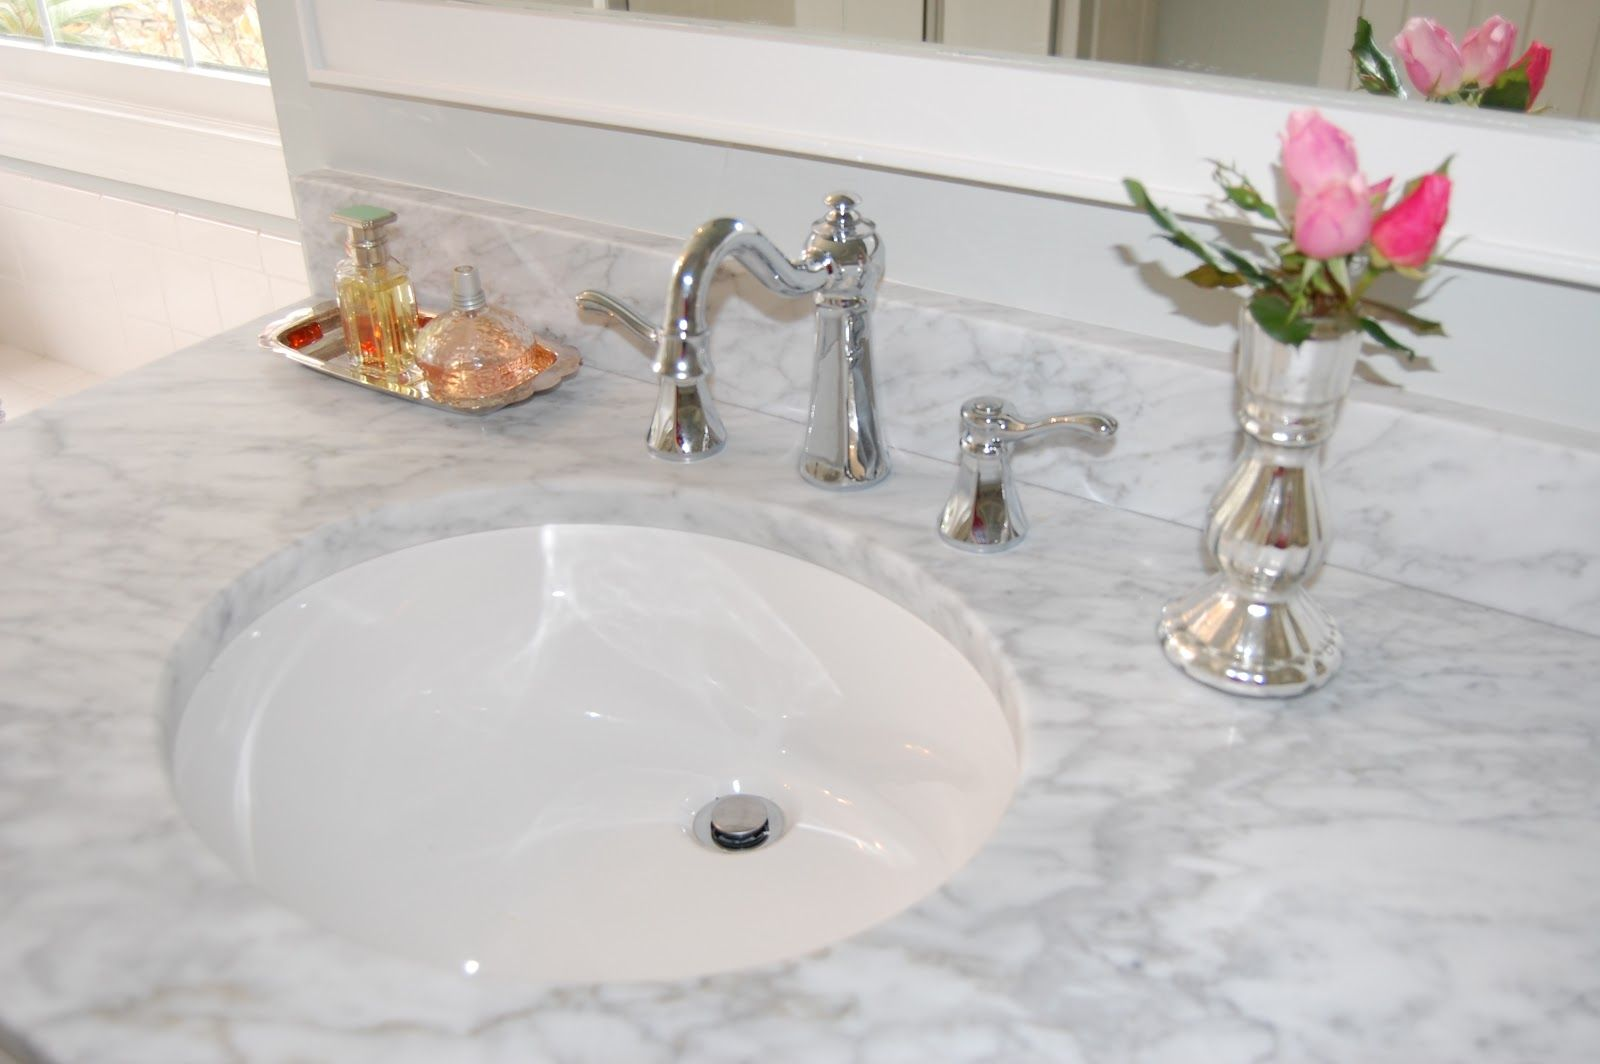 Bathroom Countertop Marble Bathroom Vanity Cultured Marble